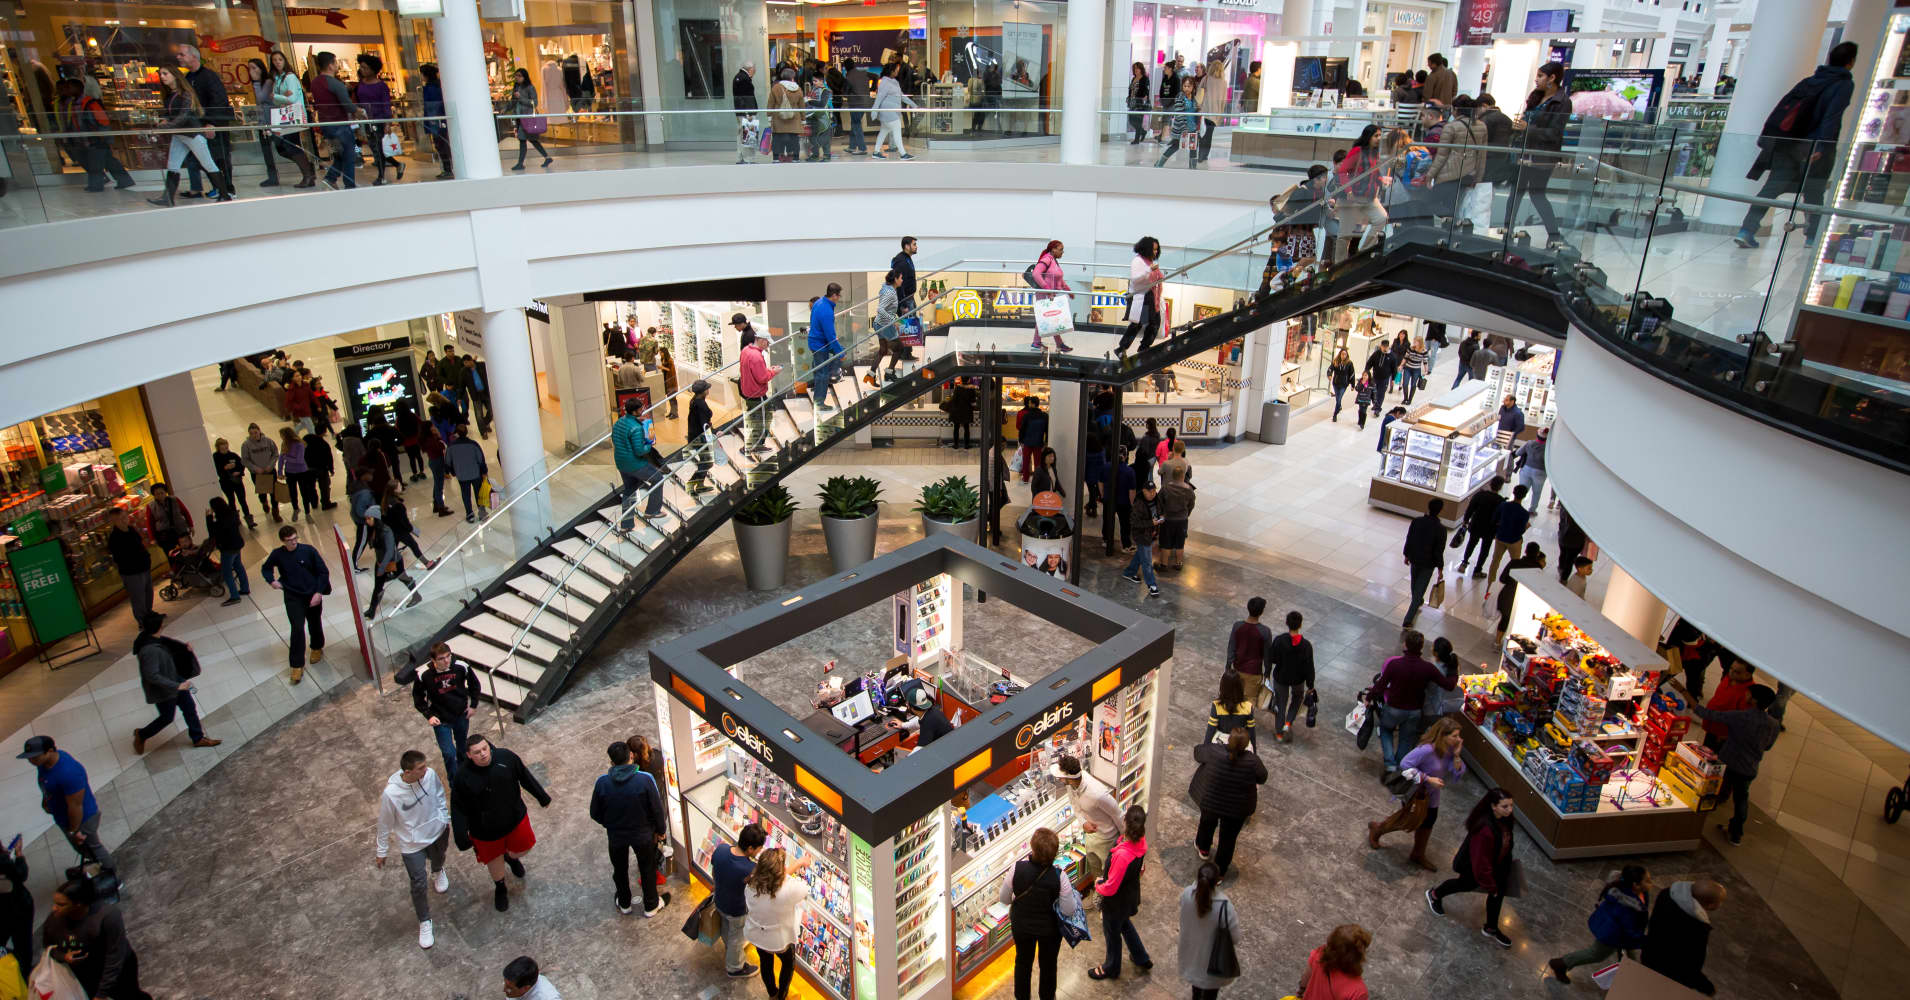 Malls are going to become ghost towns, Jim Cramer says